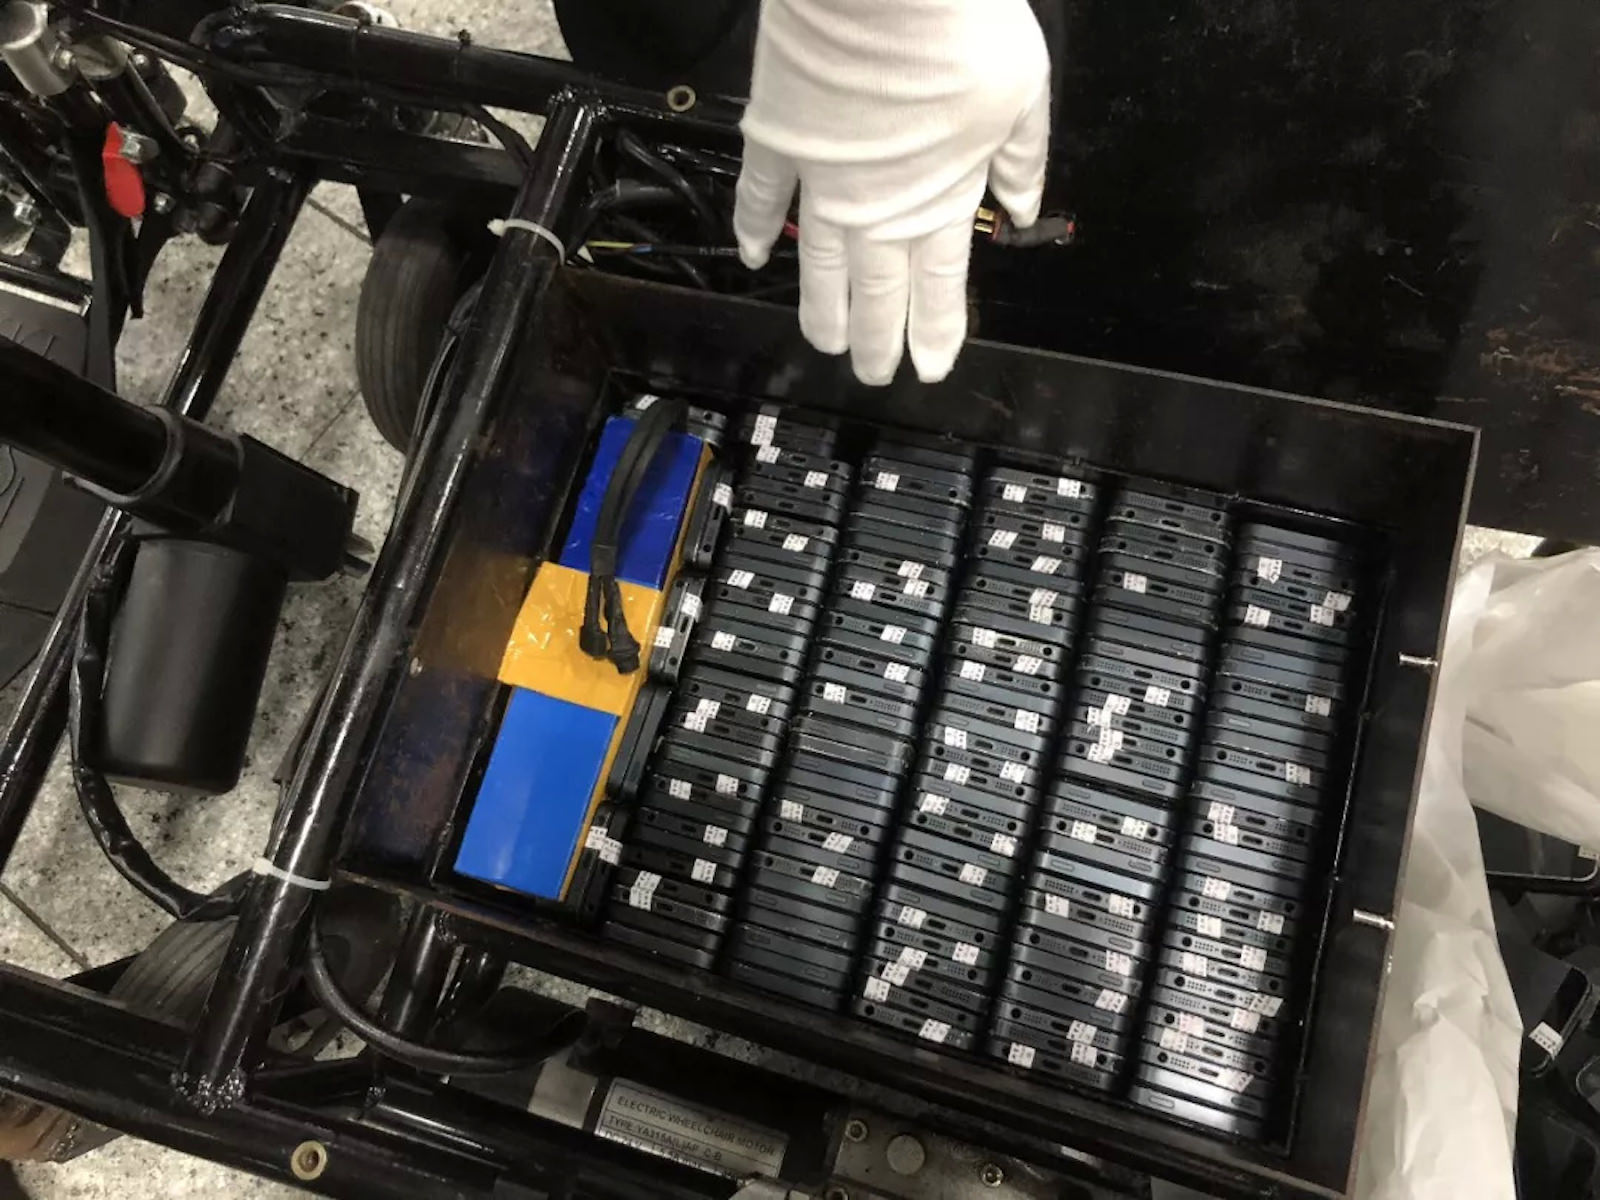 Lots of iphones found within electric wheelchair 2